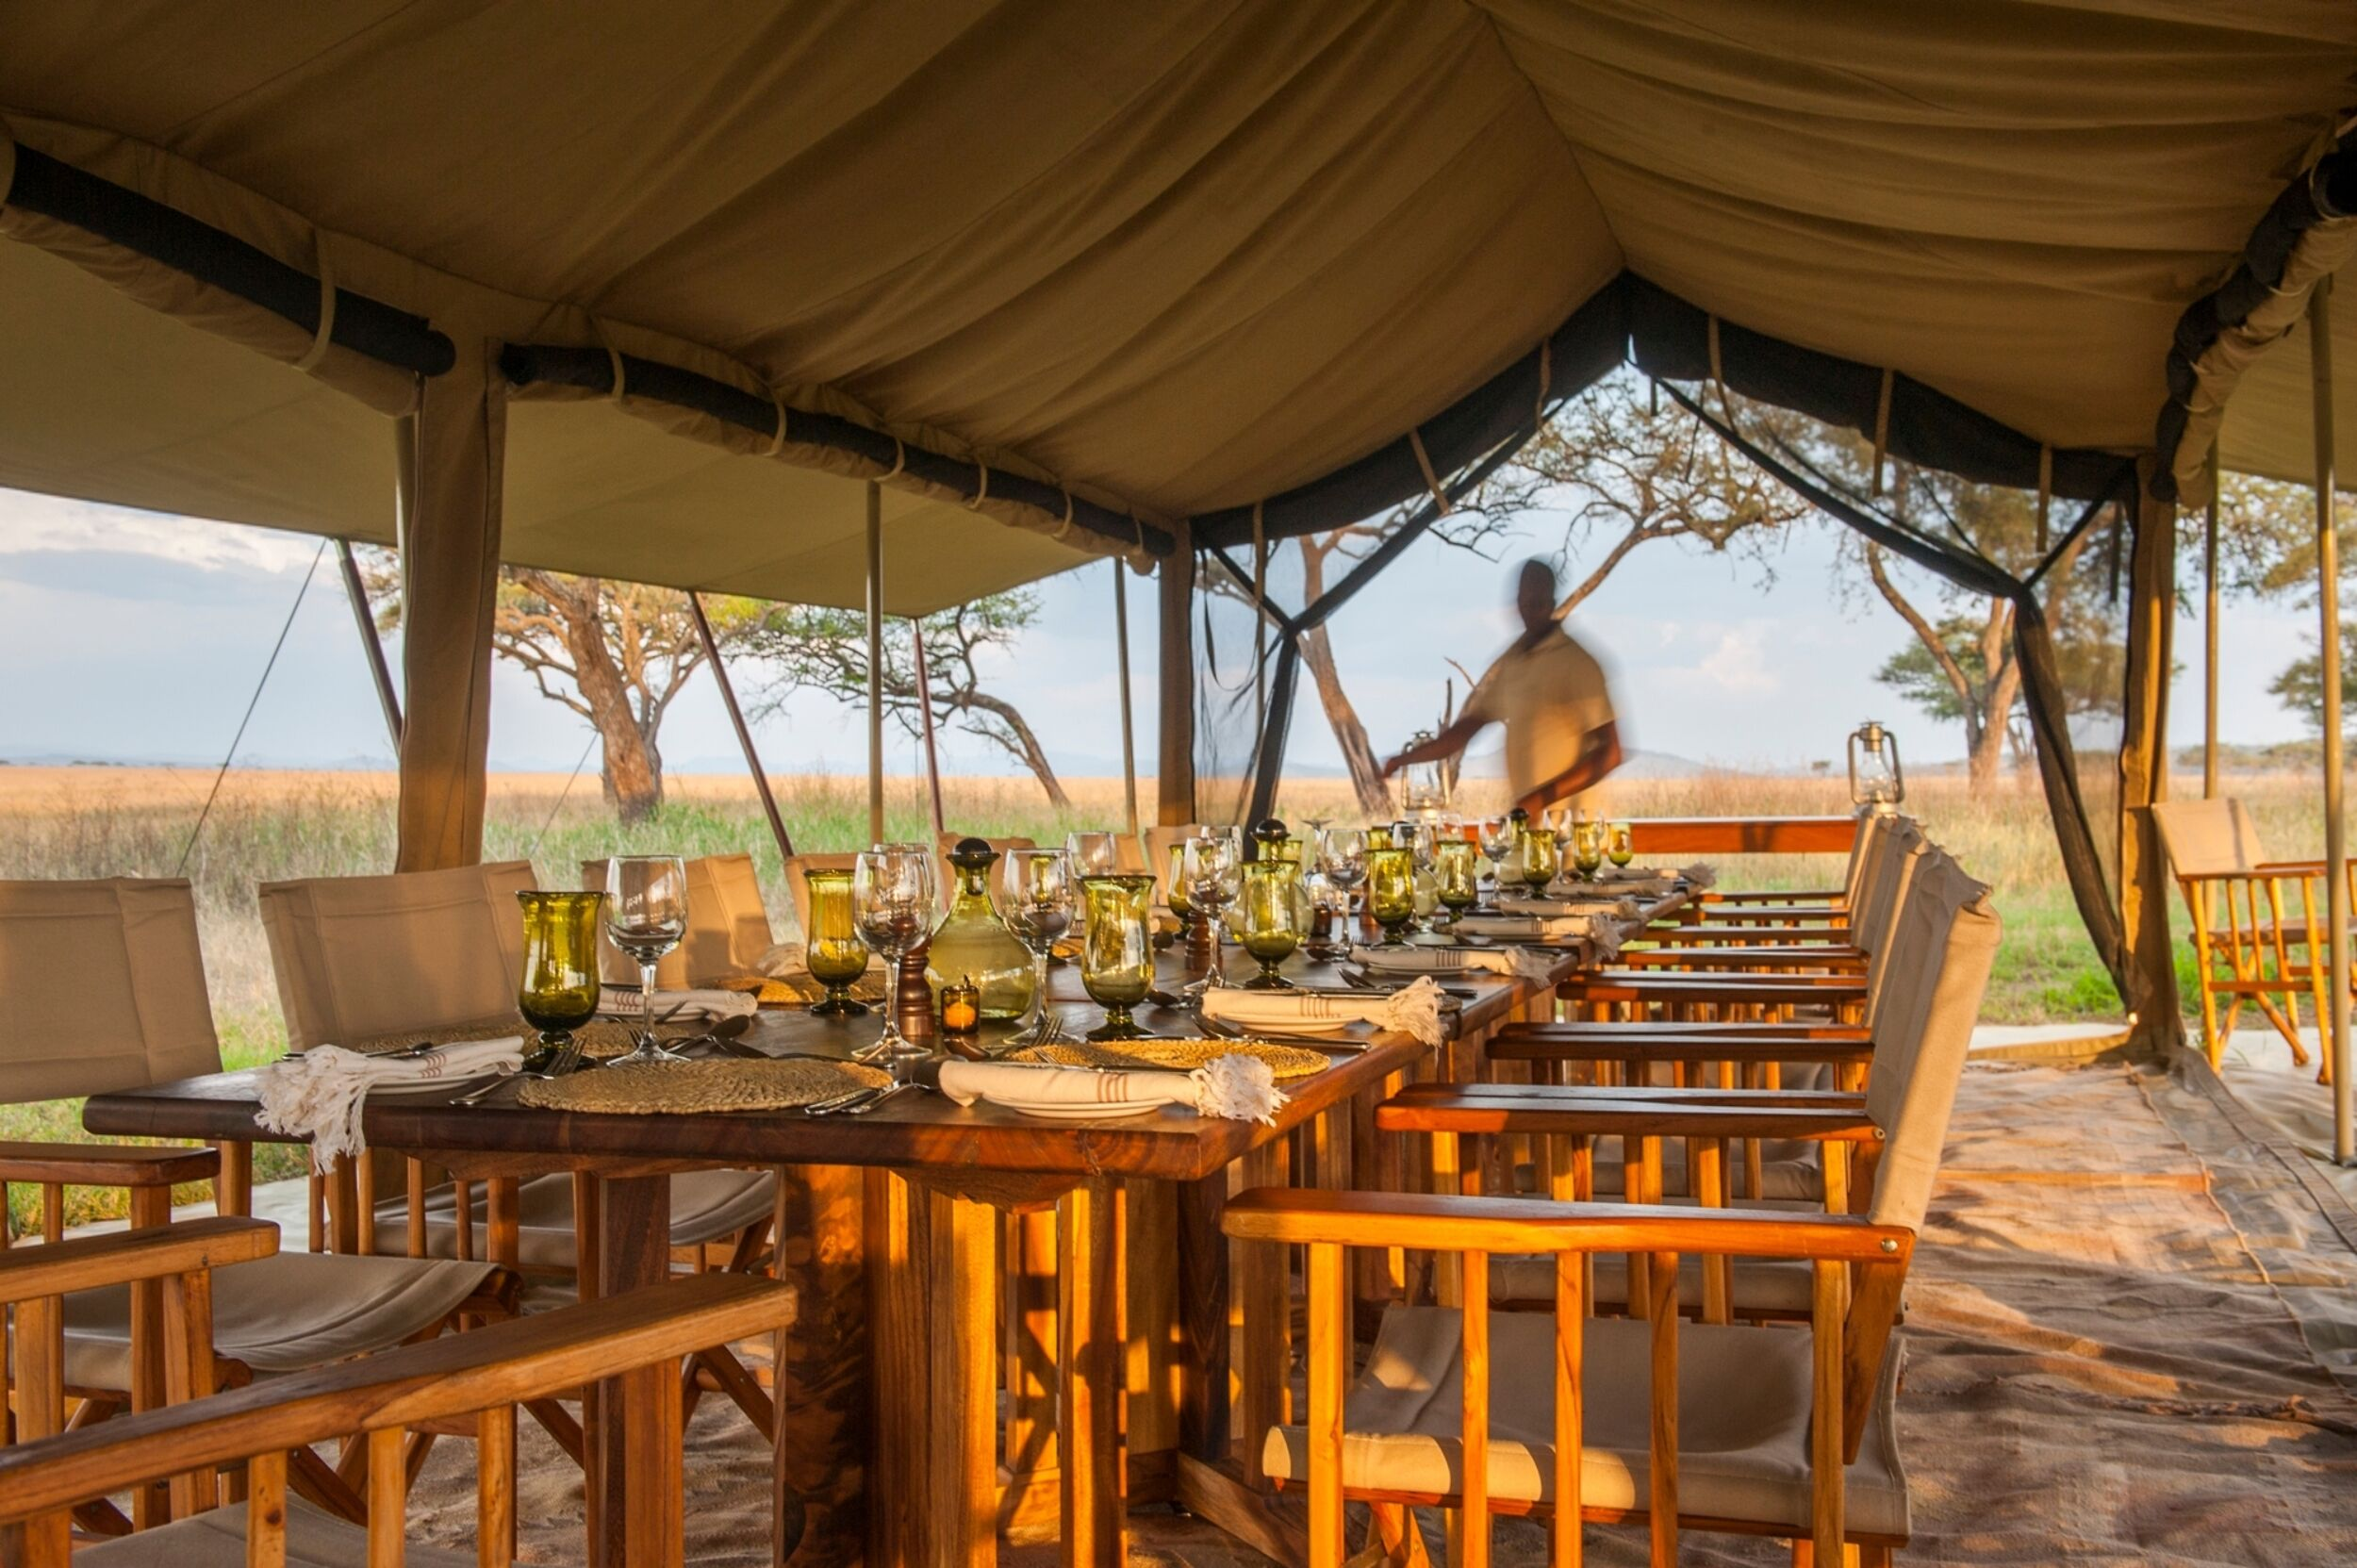 Serengeti_Safari_Camp_Dining_Area.jpeg